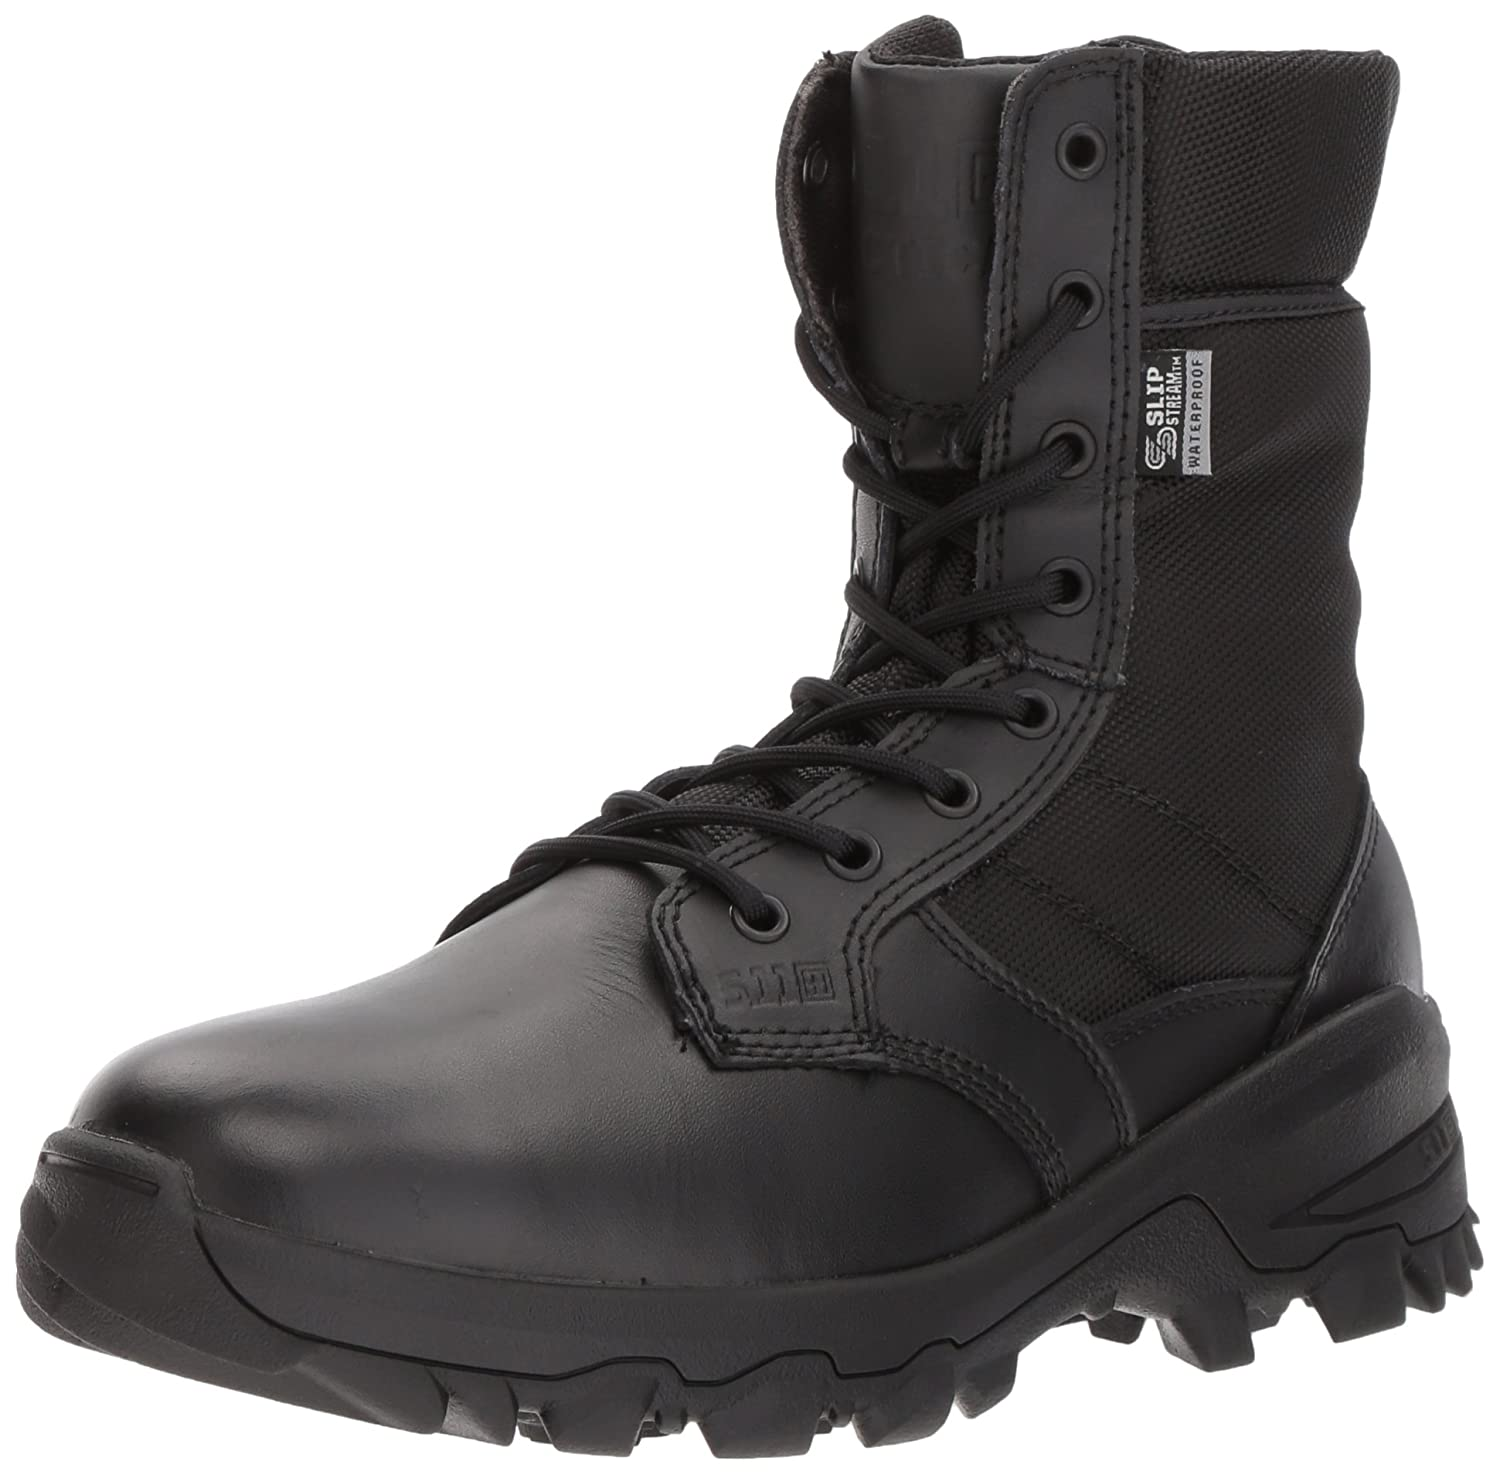 5.11 Tactical Speed 3.0 Waterproof Boot 5.11 Tactical Apparel